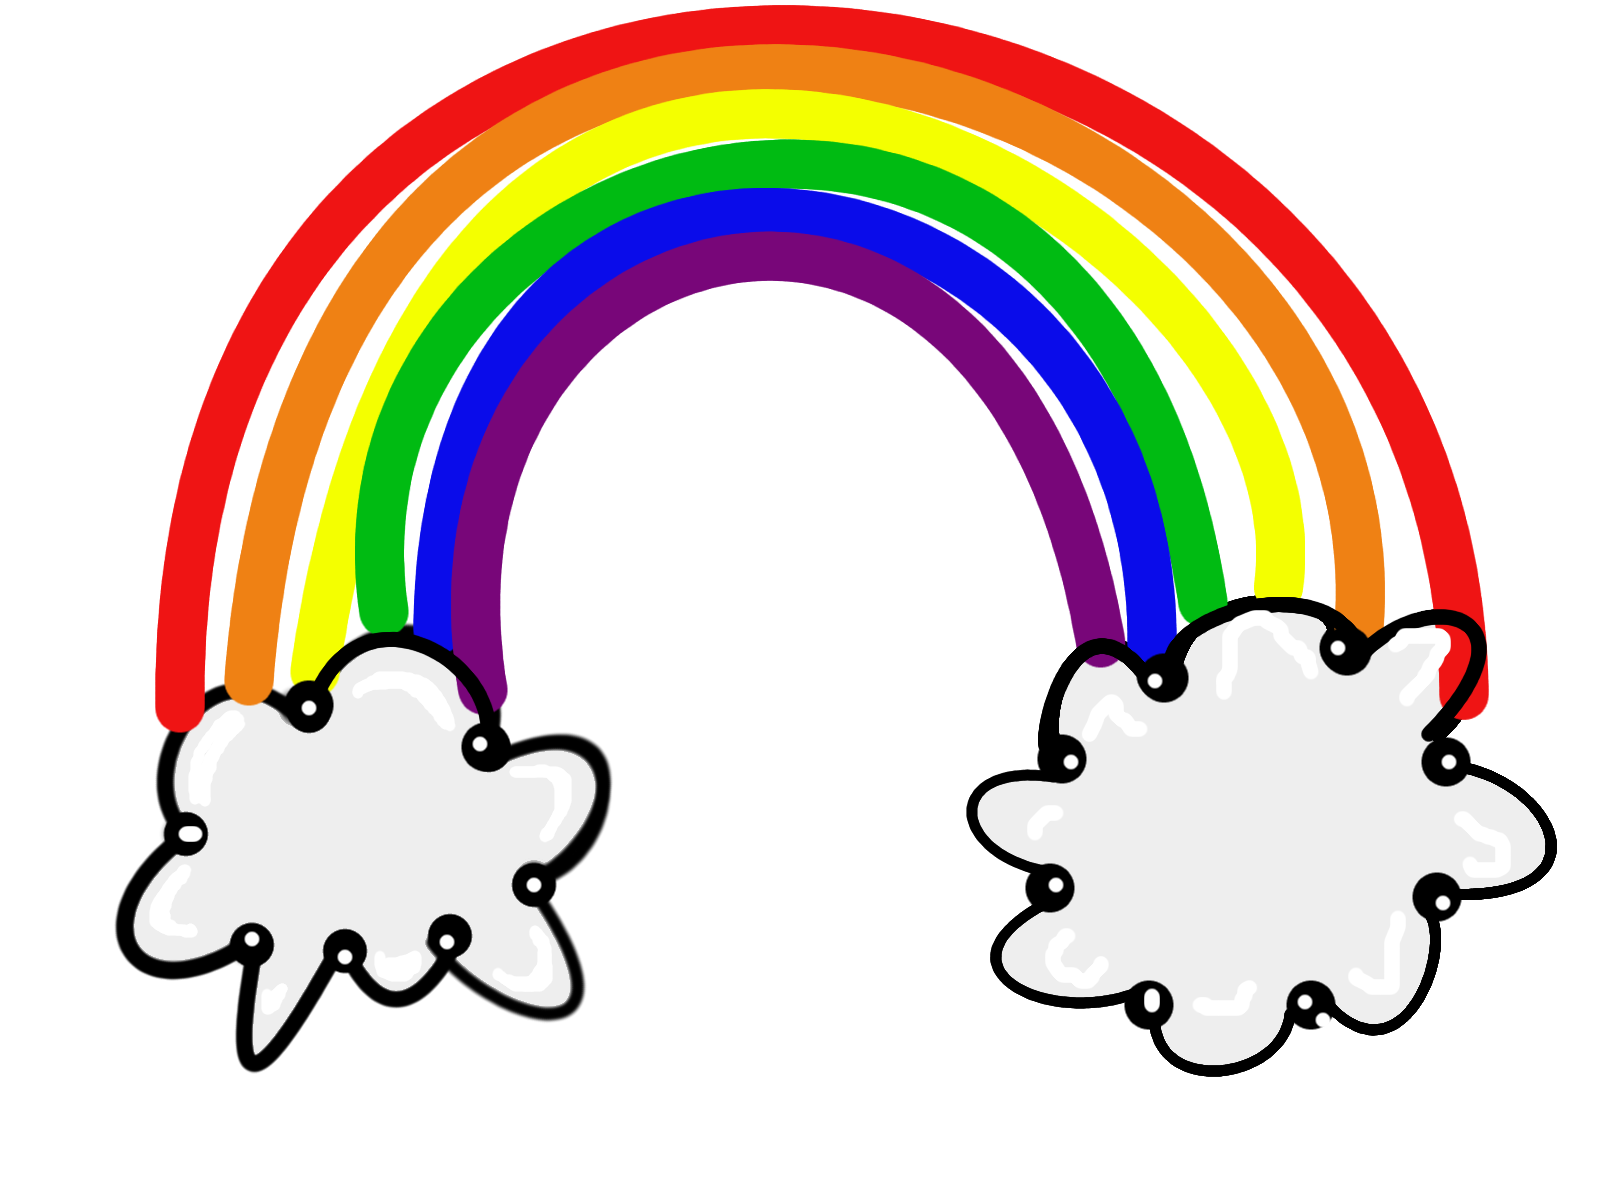 Clip Art Clip Art Rainbow rainbow clipart for kids panda free images